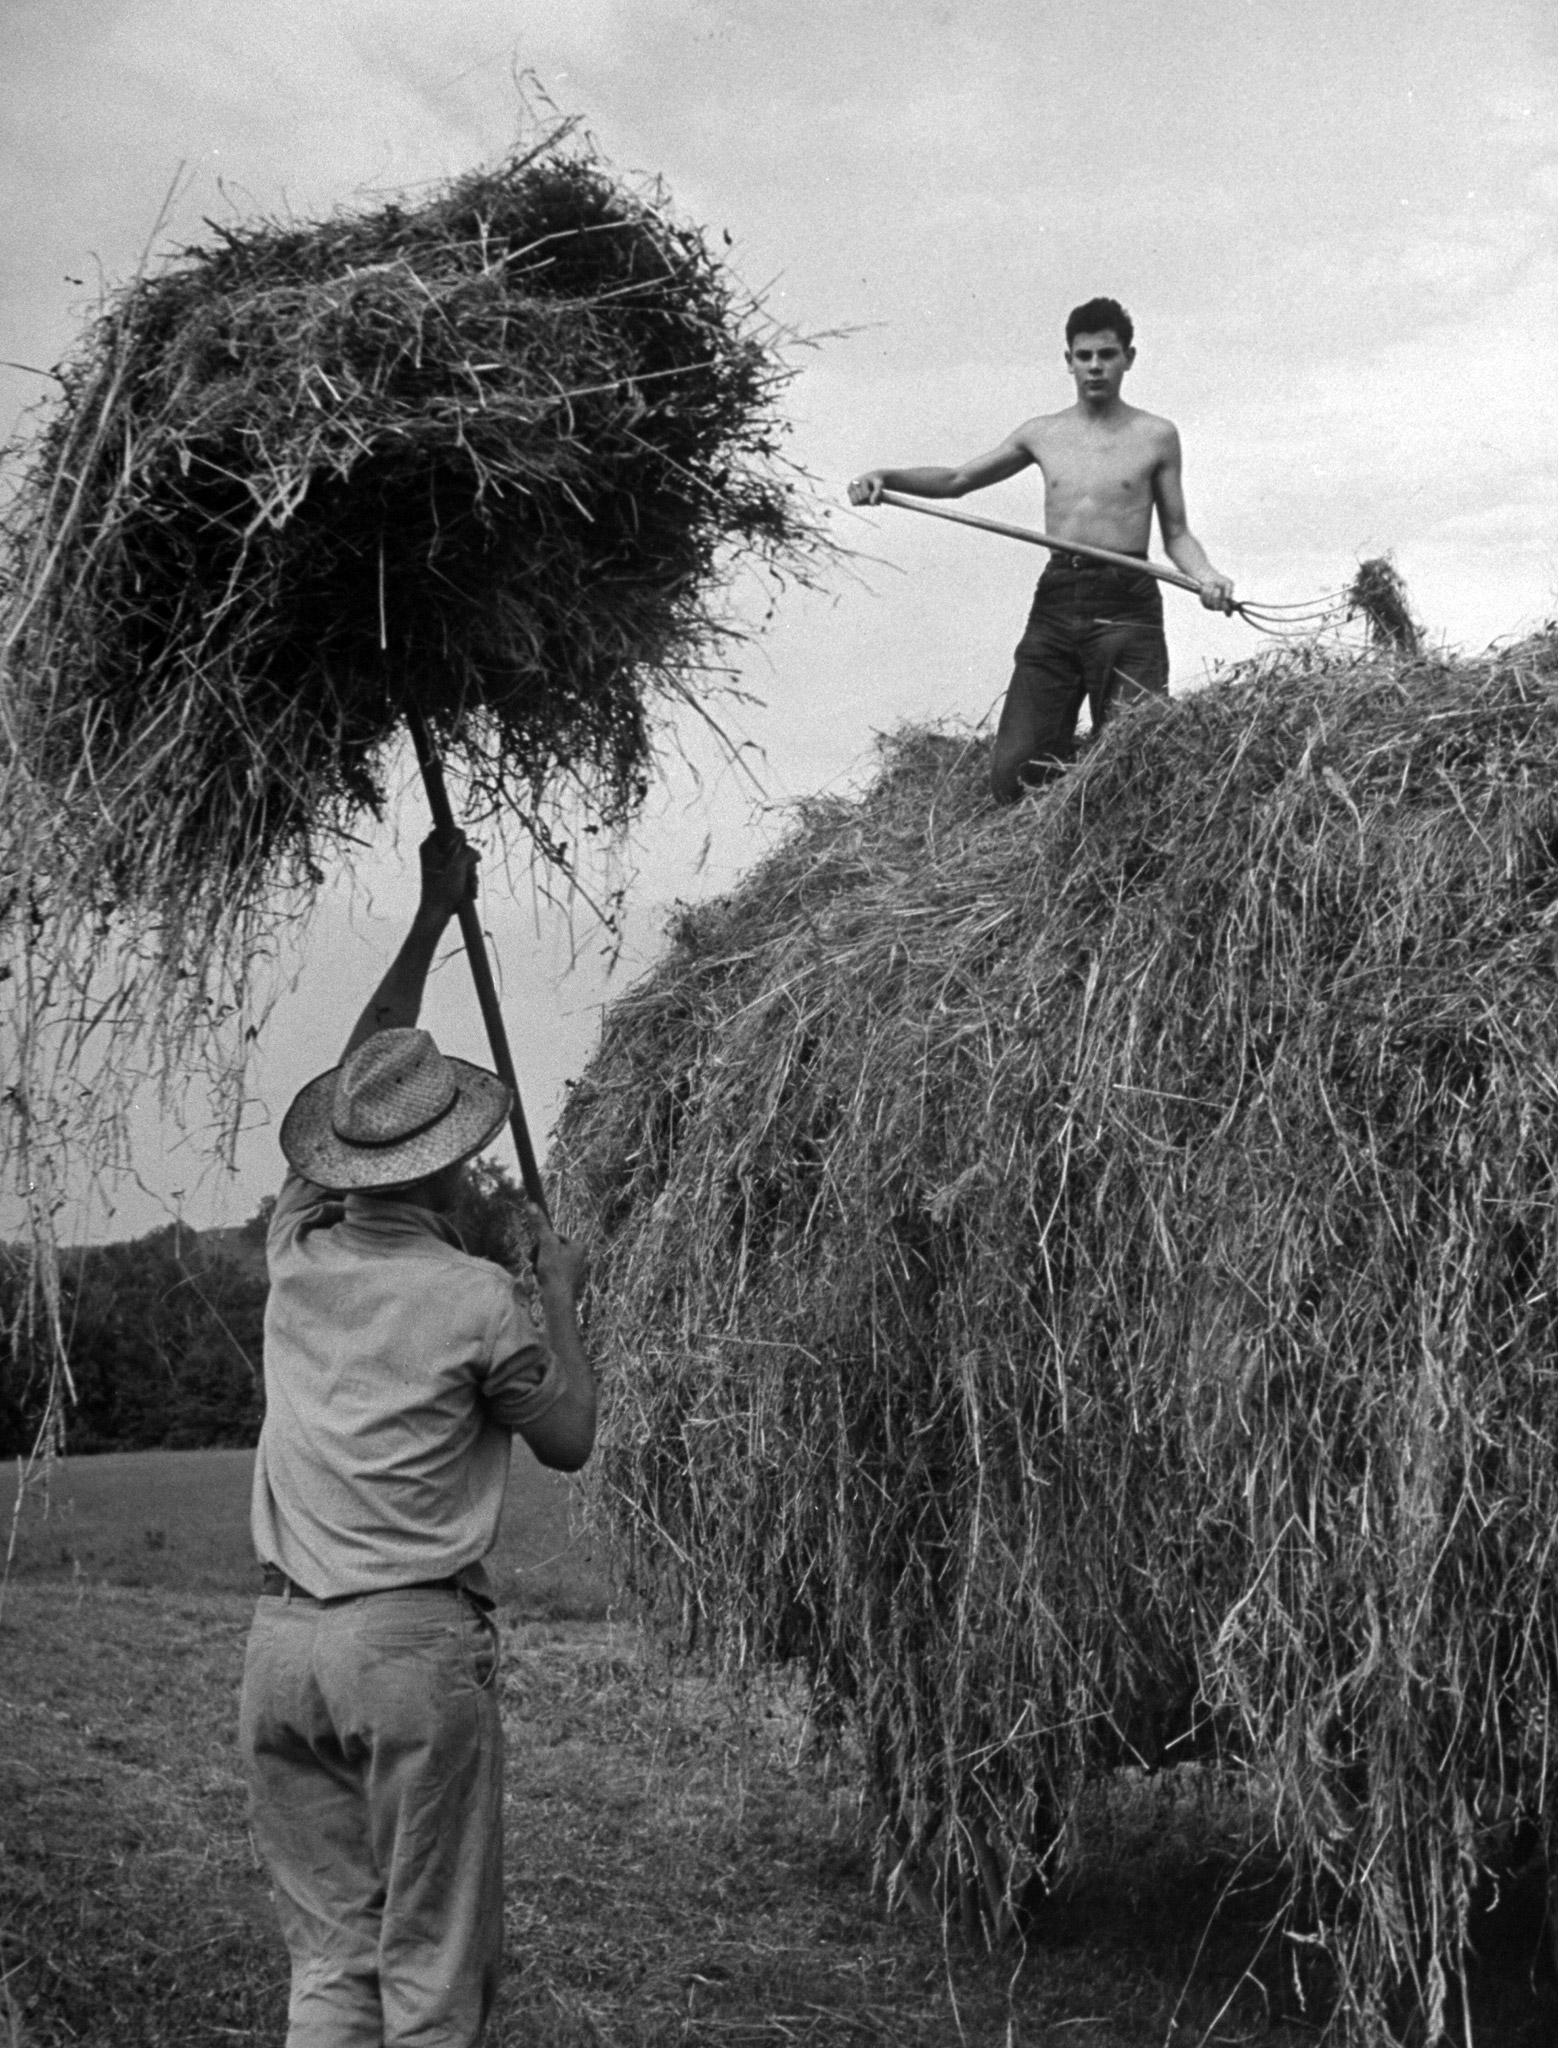 Land Corps volunteer, 16 year-old  Dick Sterne from Long Island, pitching hay atop a wagon on Ascutney Farm in Vermont.